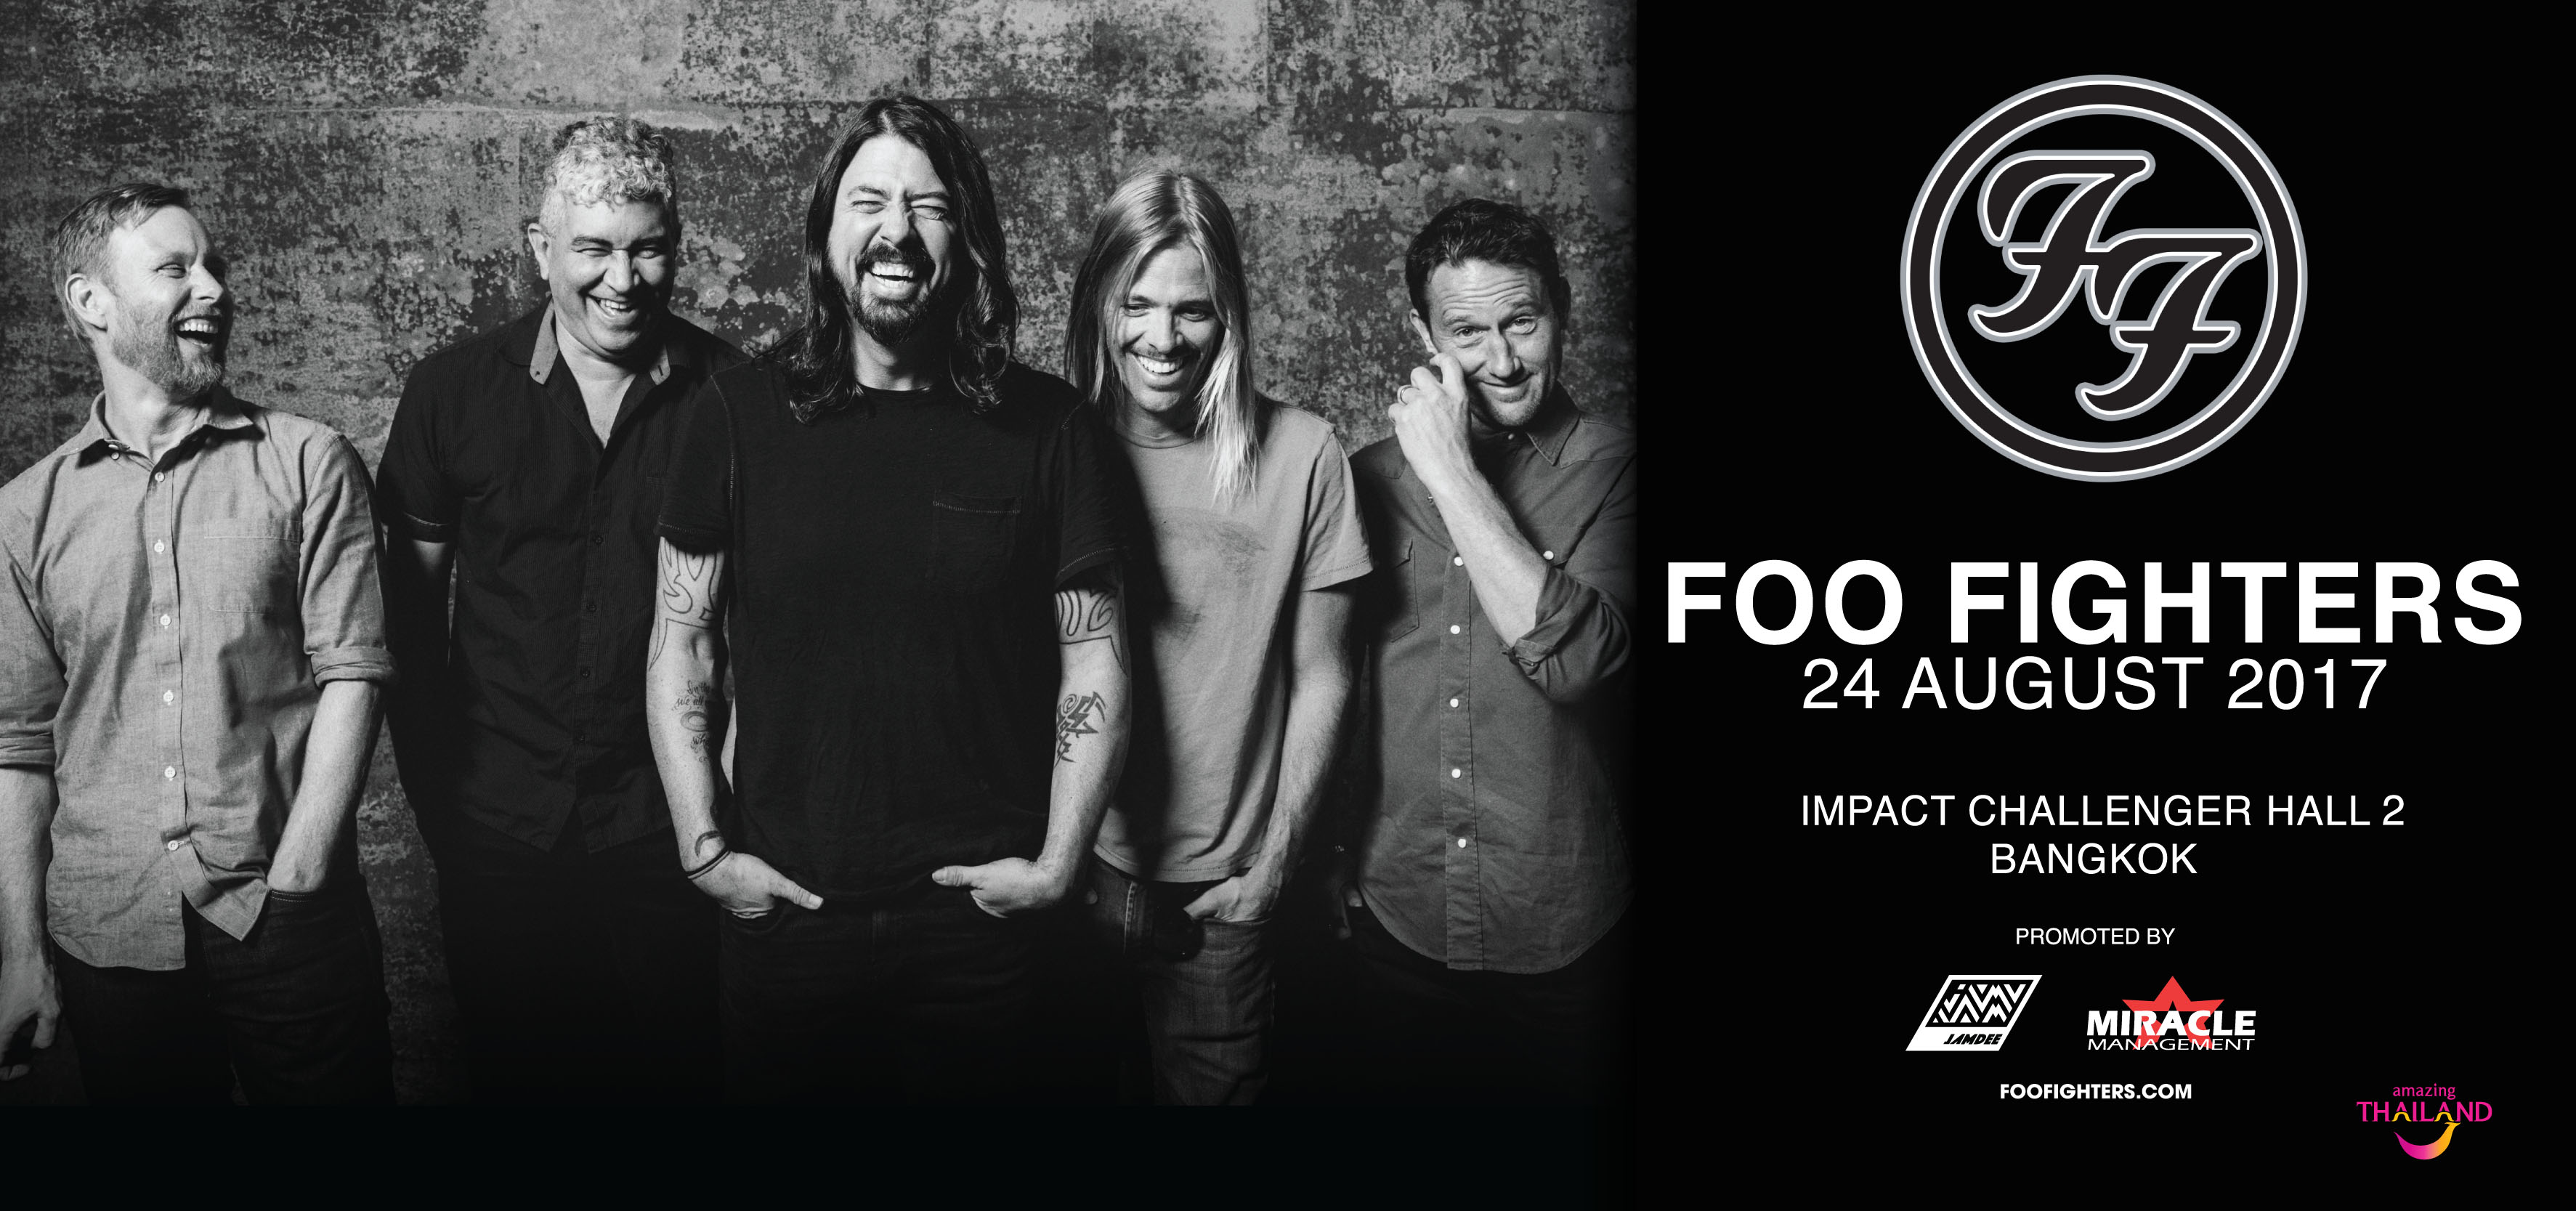 Foo fighters 1702x800pix